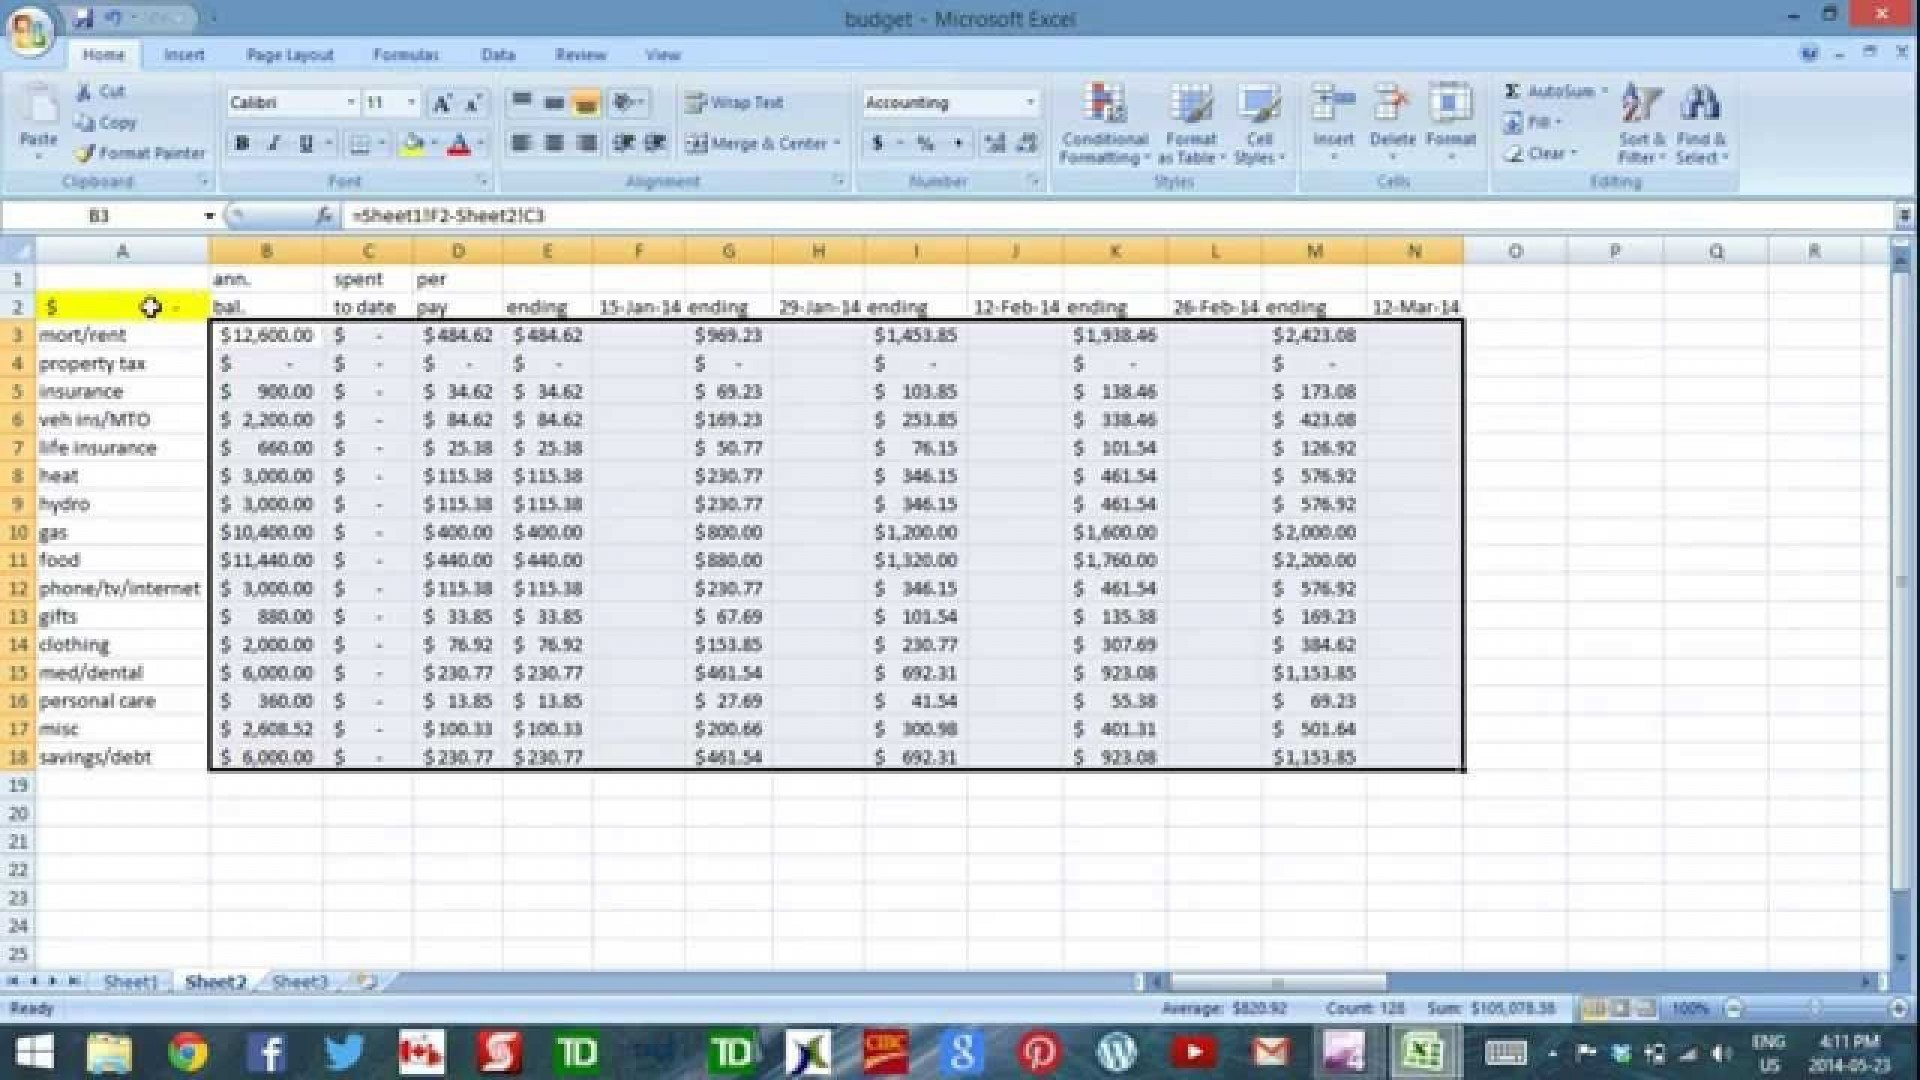 004 Awesome Cash Flow Template Excel Sample  Personal Uk Construction Forecast Simple Weekly1920